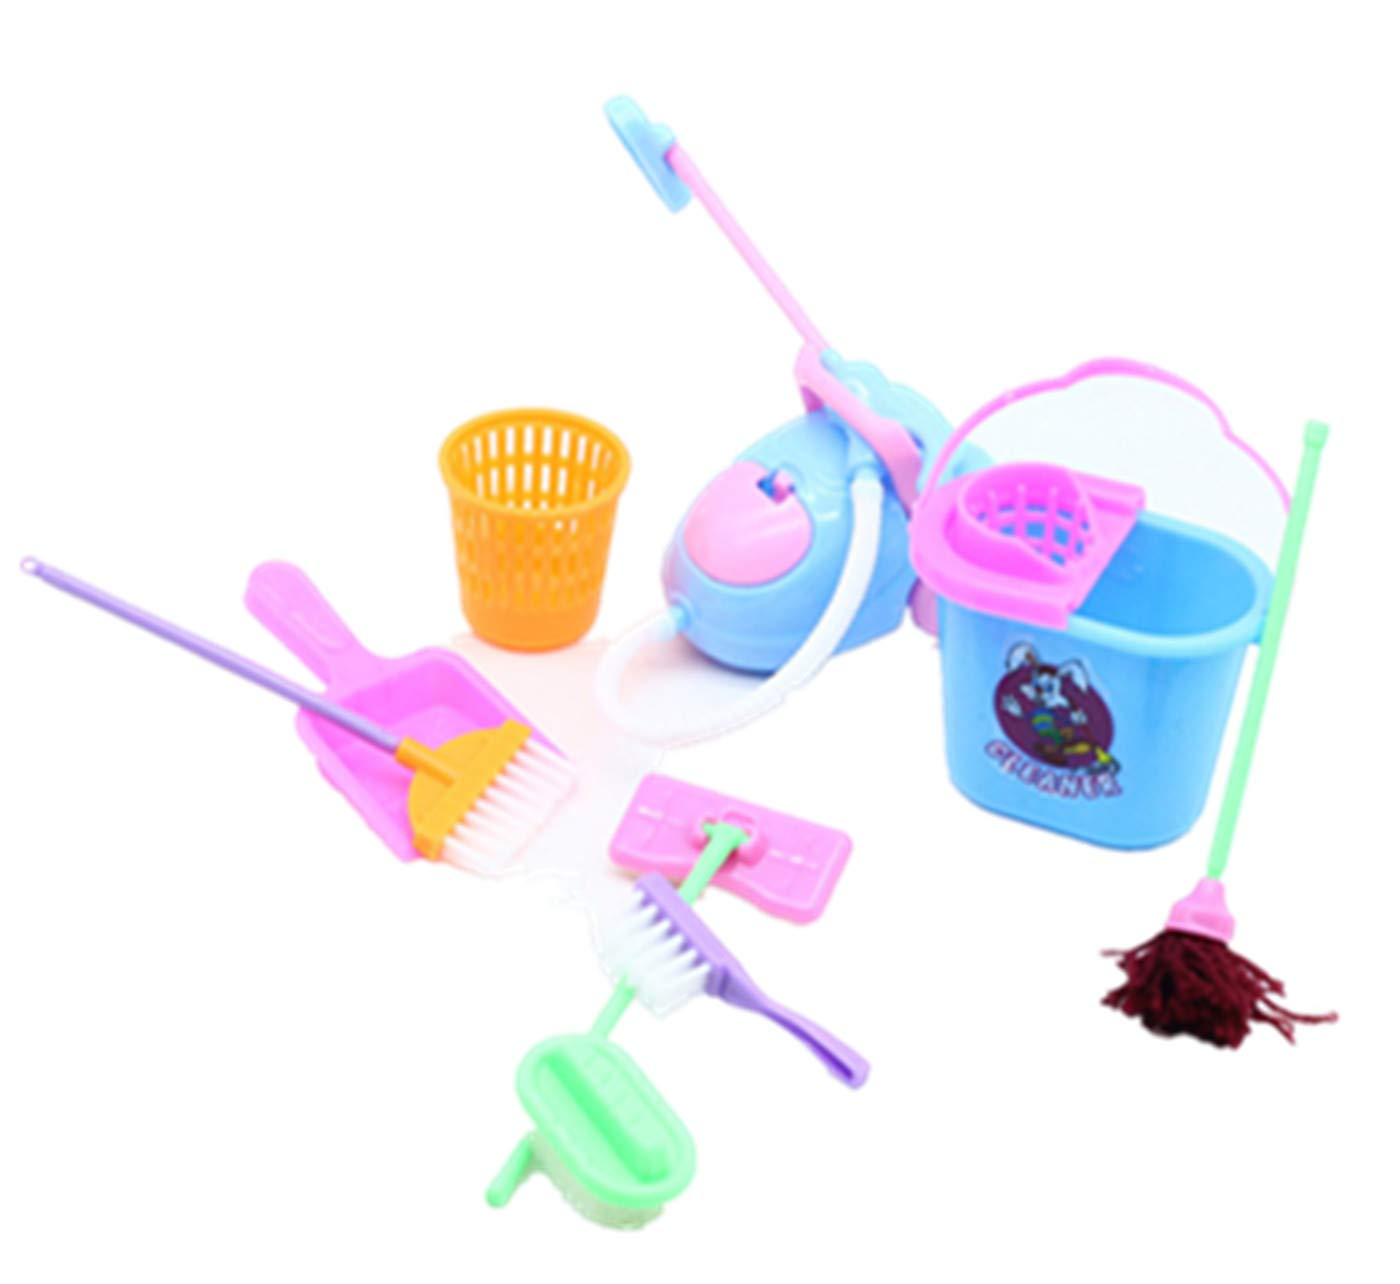 Sale! GreatestPAK 9 pcs Dolls Pretend Play Toys, Cleaning Kit For Barbie Dolls Play Set Educational Plastic Party Gift (Color Random)